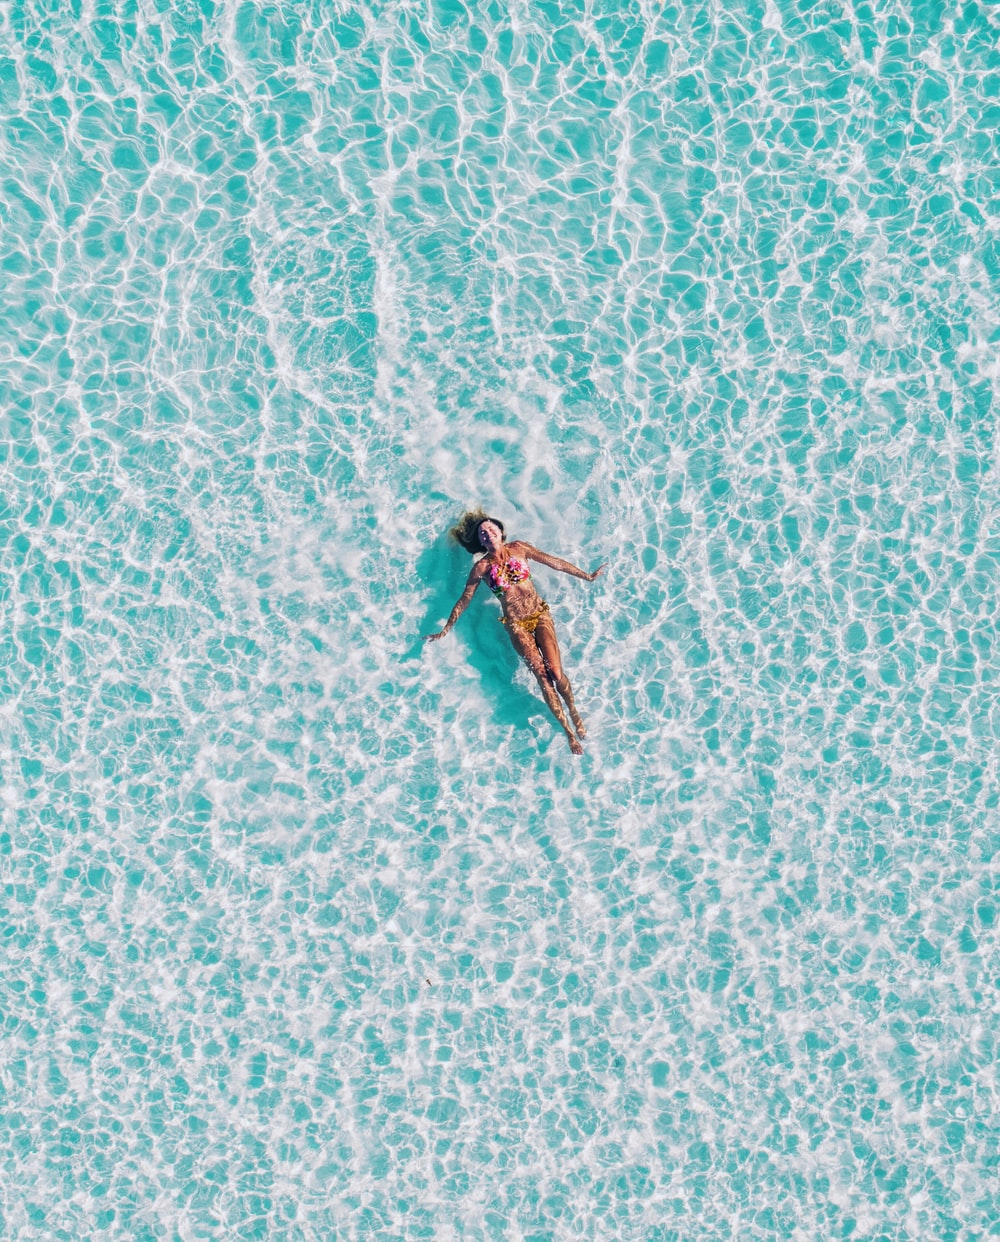 A top view of a woman in a bikini swimming on her back in clear ocean water